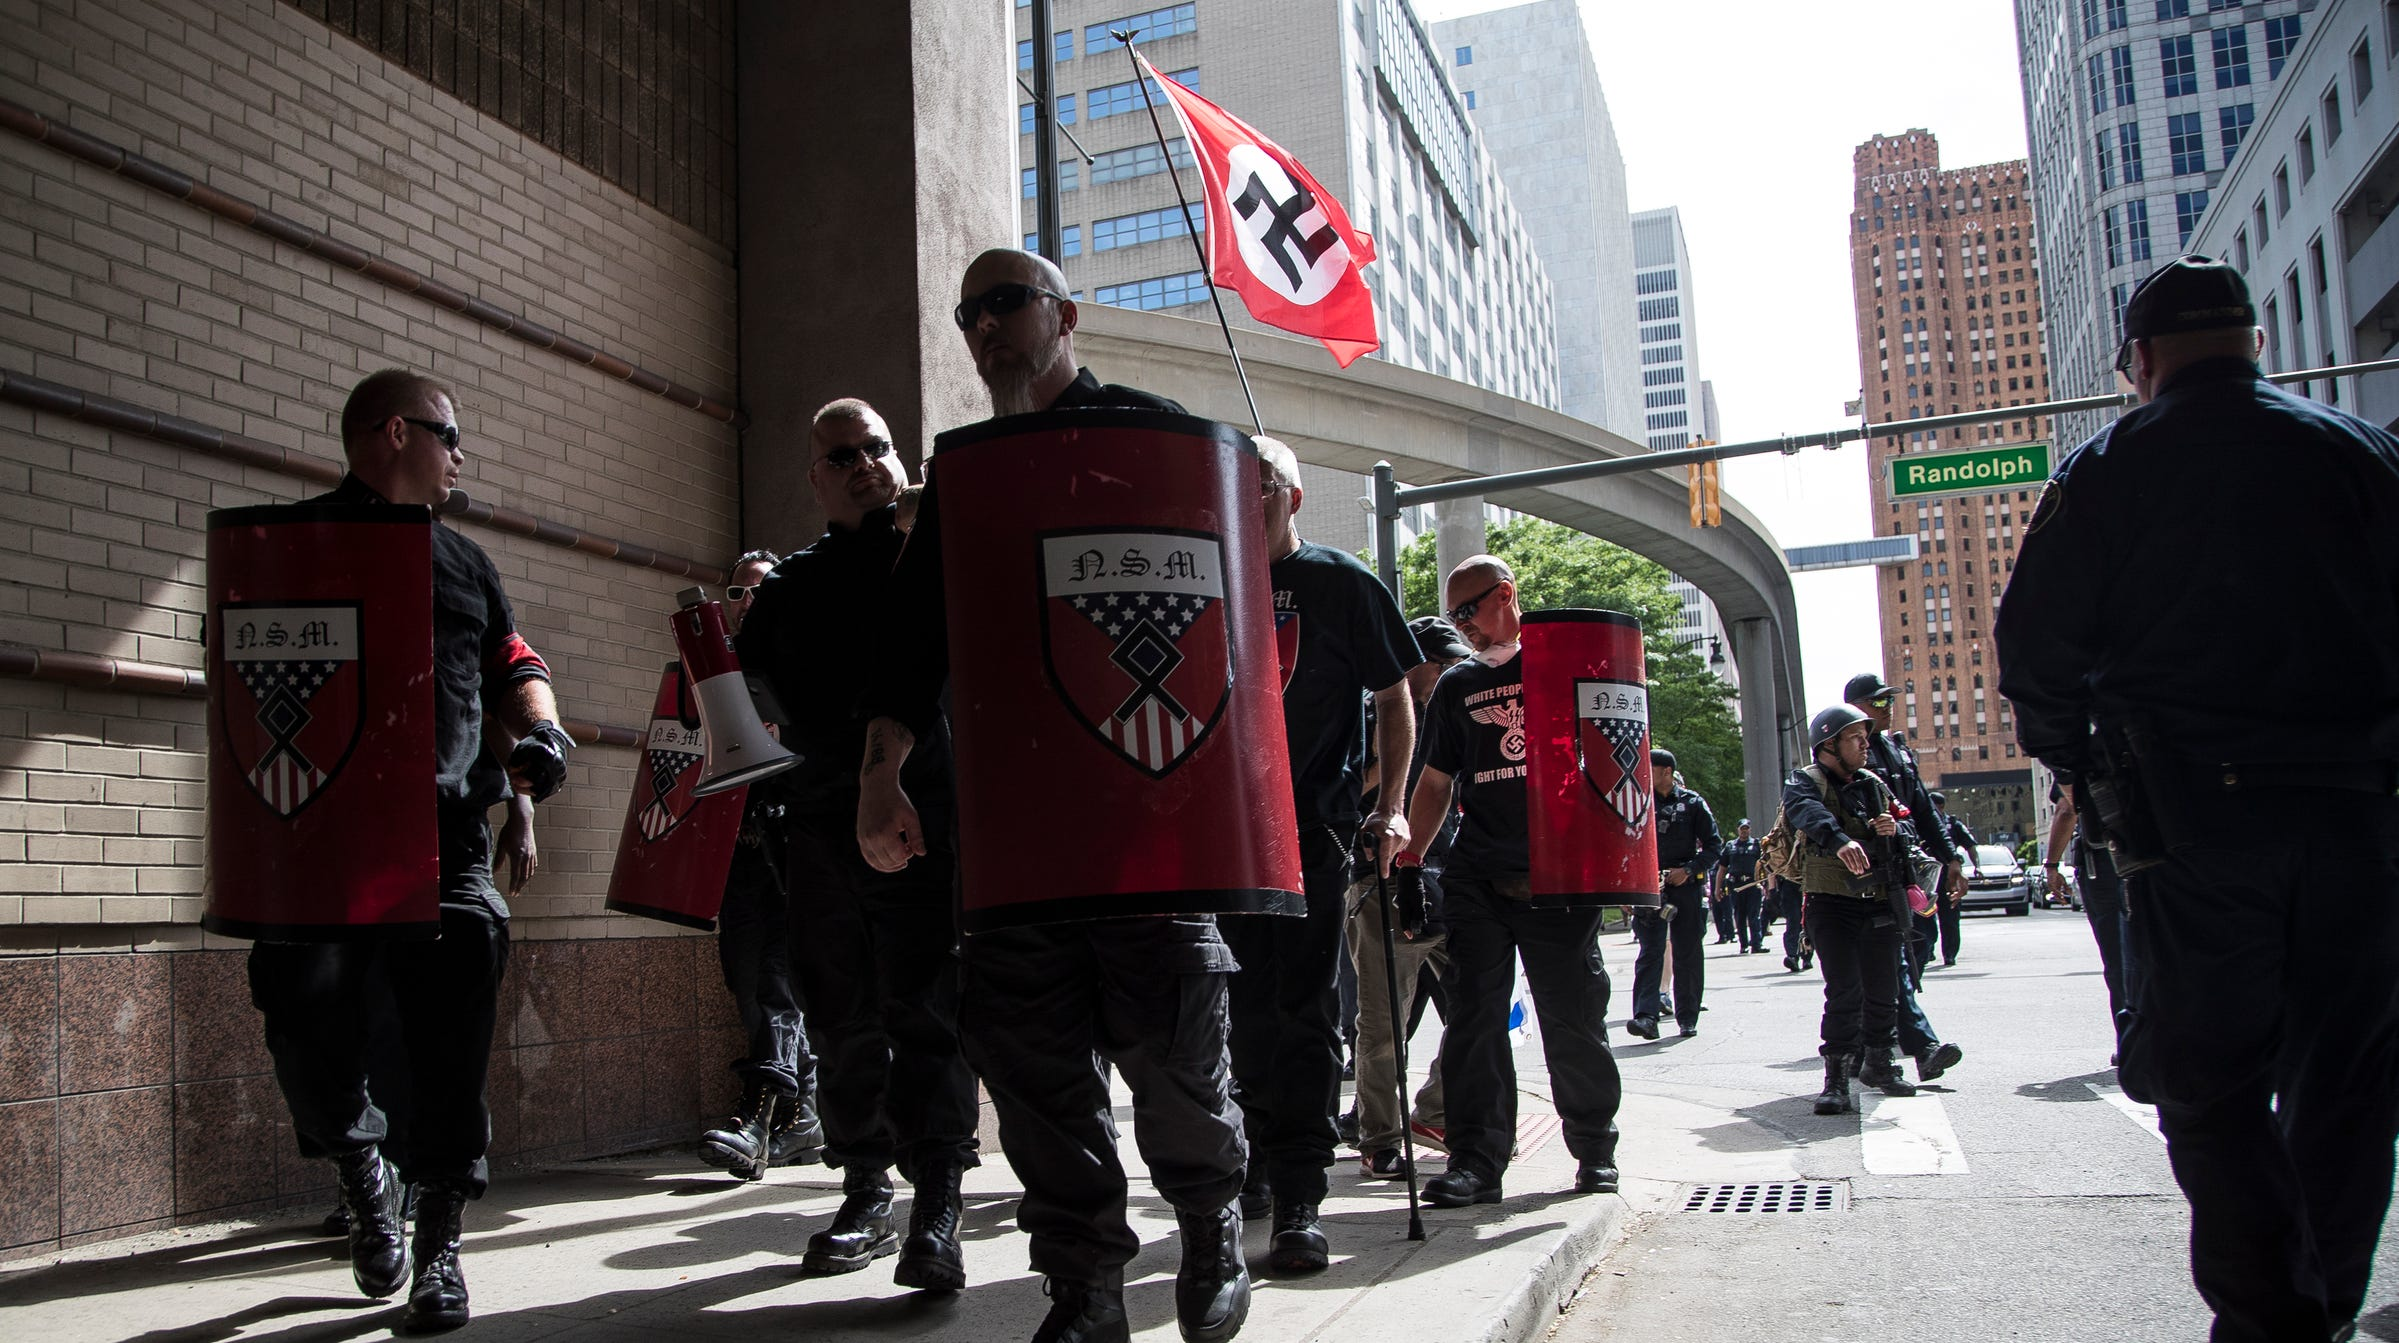 Neo-Nazis will rally in Phoenix? That can't be a coincidence